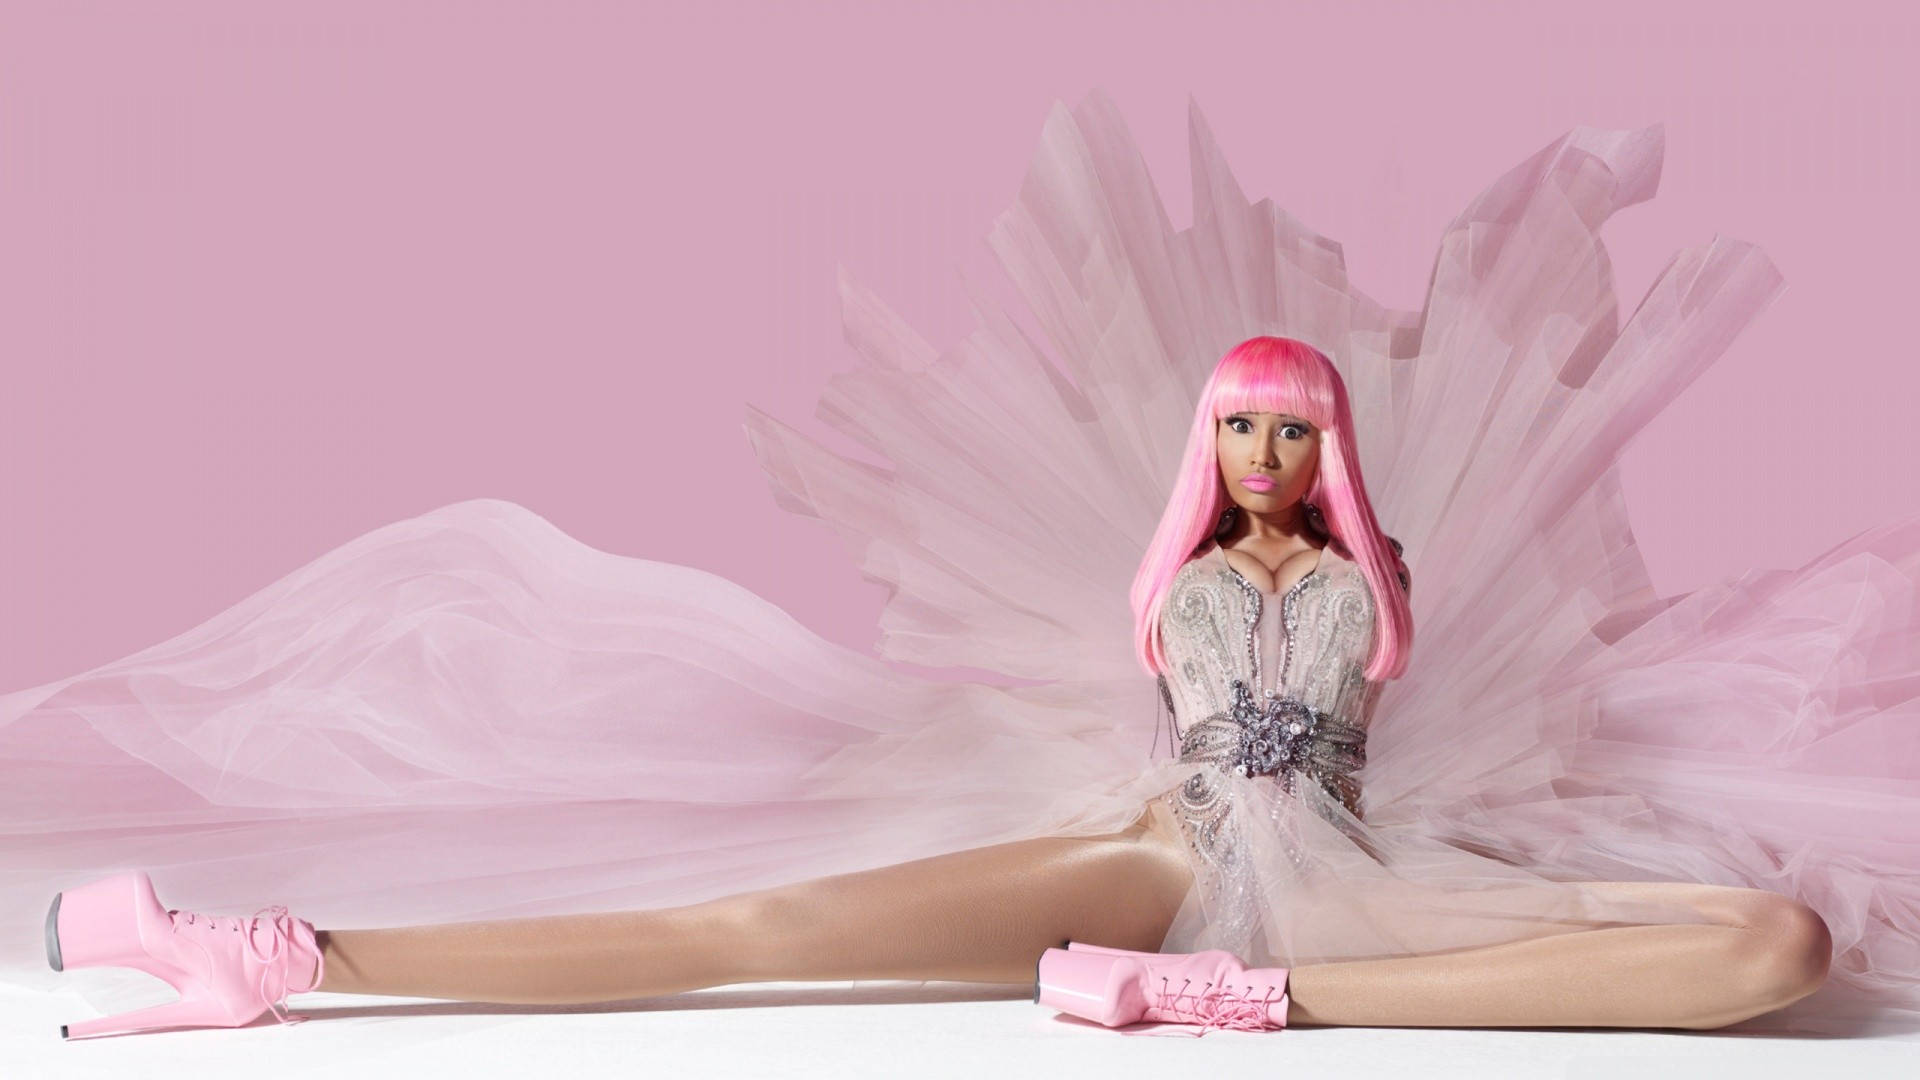 Nothing found for Anaconda Nicki Minaj Parodie Net 1920x1080